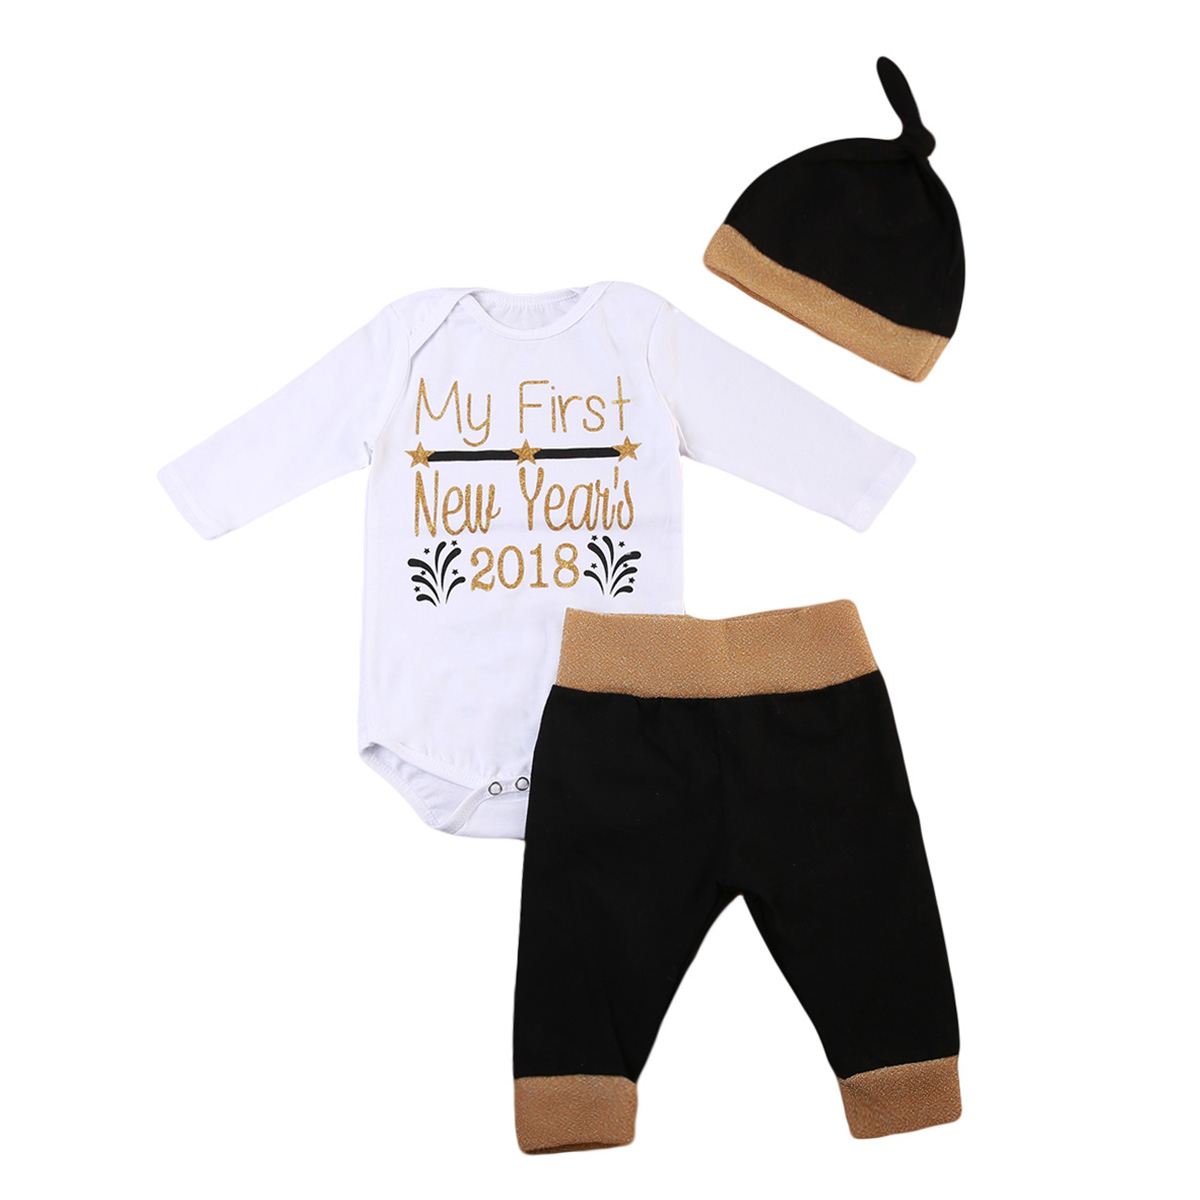 Cute Newborn Baby Boy Girls Clothes Set 2018 New Year Striped Cotton Long Sleeve Bodysuit Jumpsuit Outfit Clothes 4pcs set newborn baby clothes infant bebes short sleeve mini mama bodysuit romper headband gold heart striped leg warmer outfit